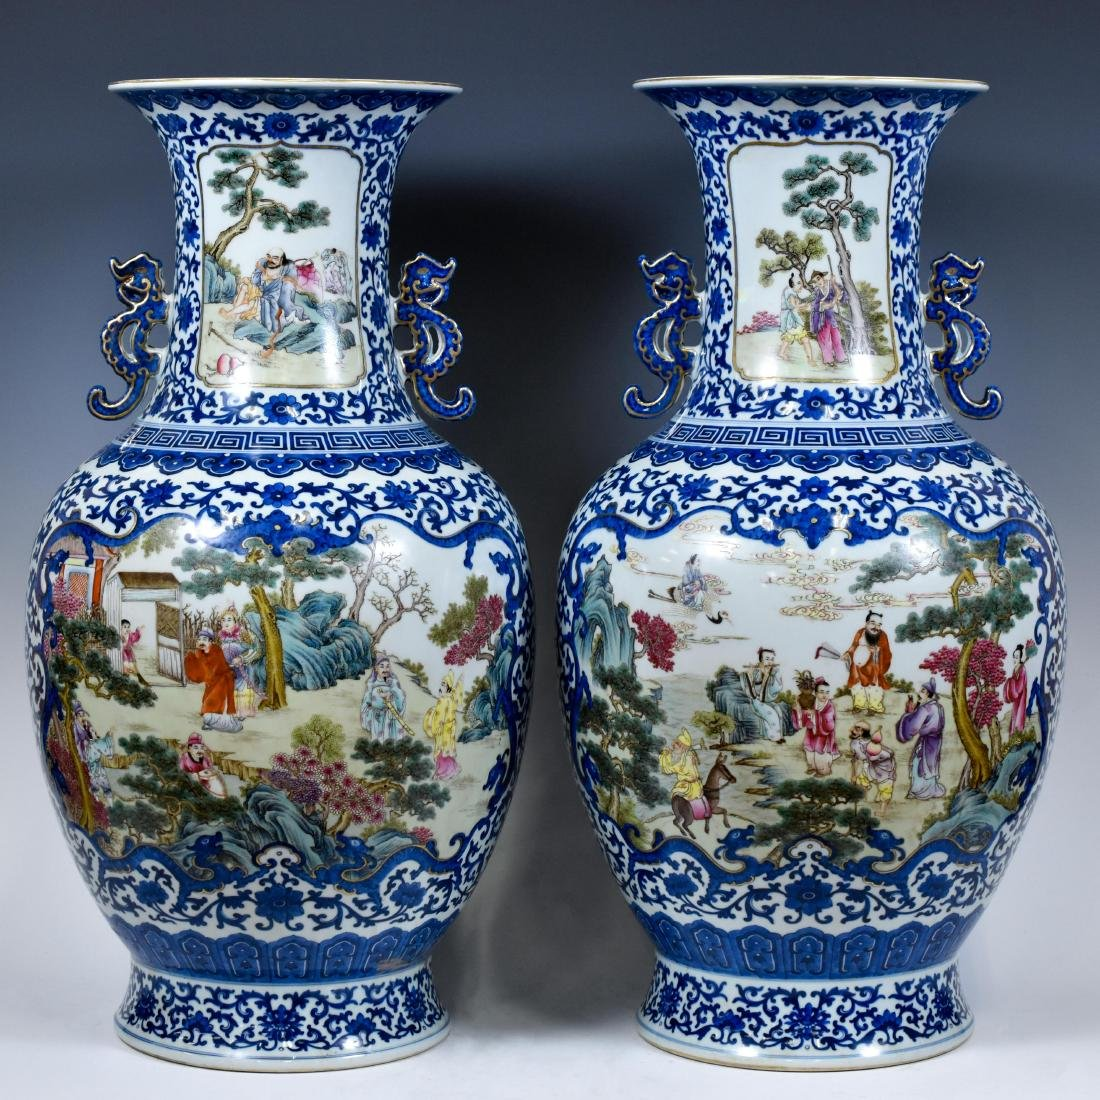 PAIR OF FAMILLE ROSE OPEN FACE VASES